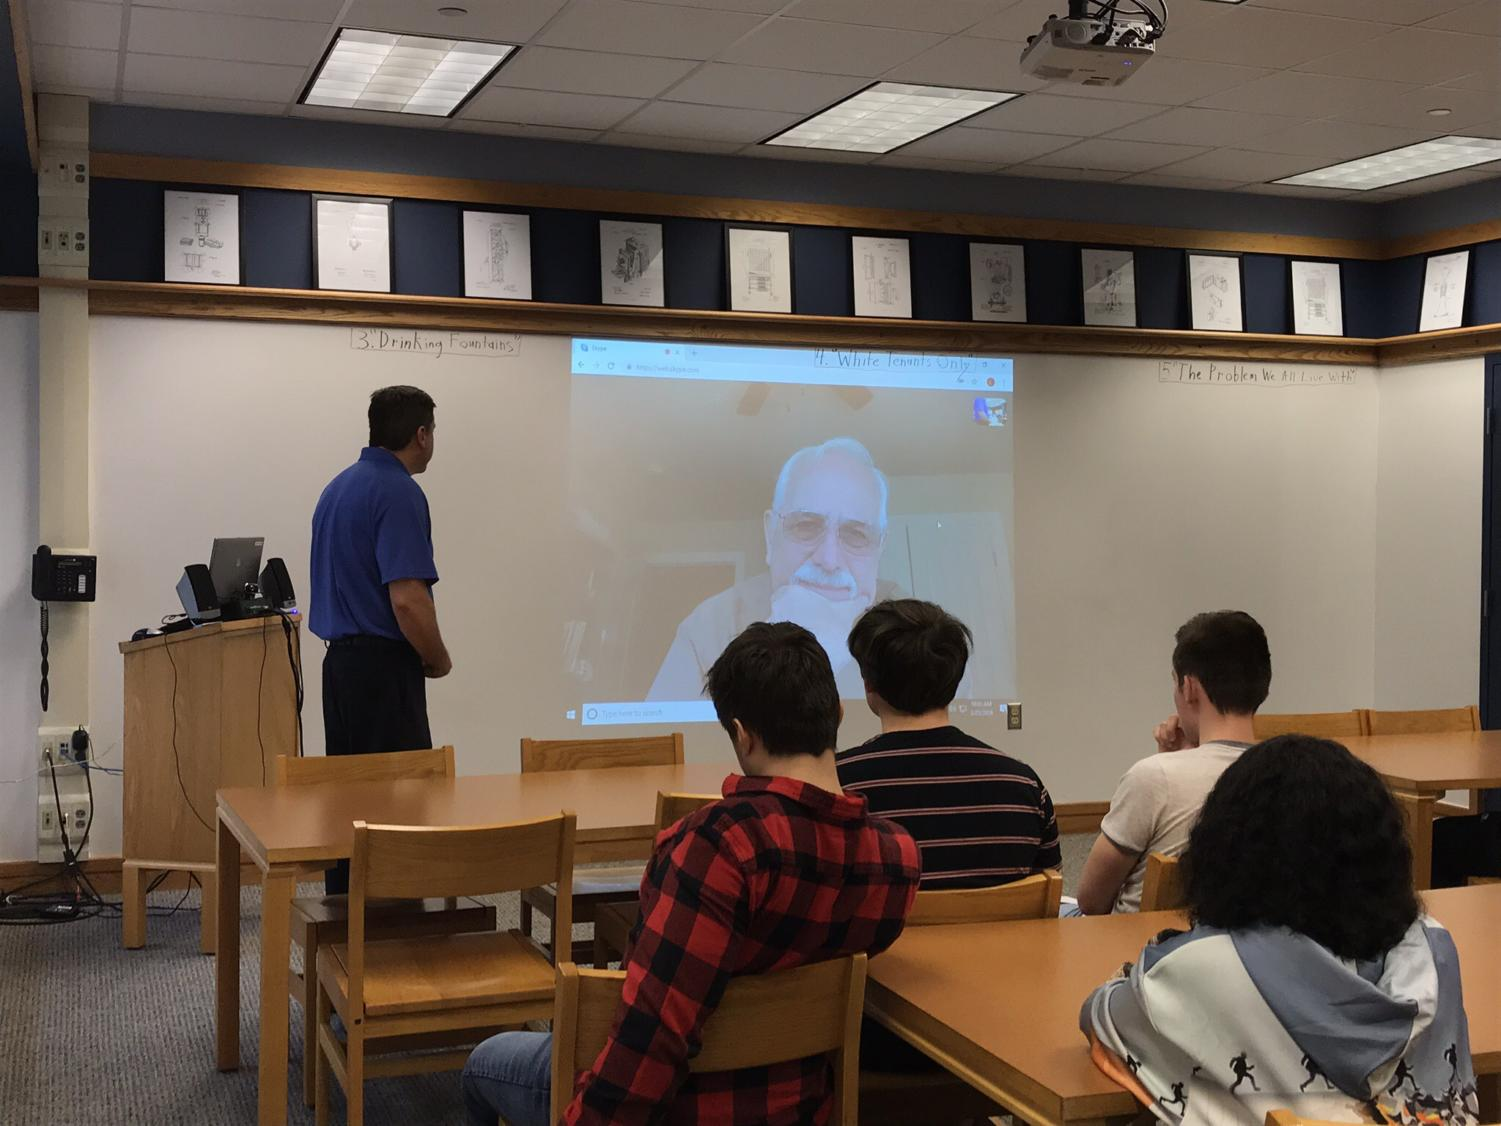 Students in Mr. Bruckner's Earth and Space class participate in a Skype call with an astronomy professor.